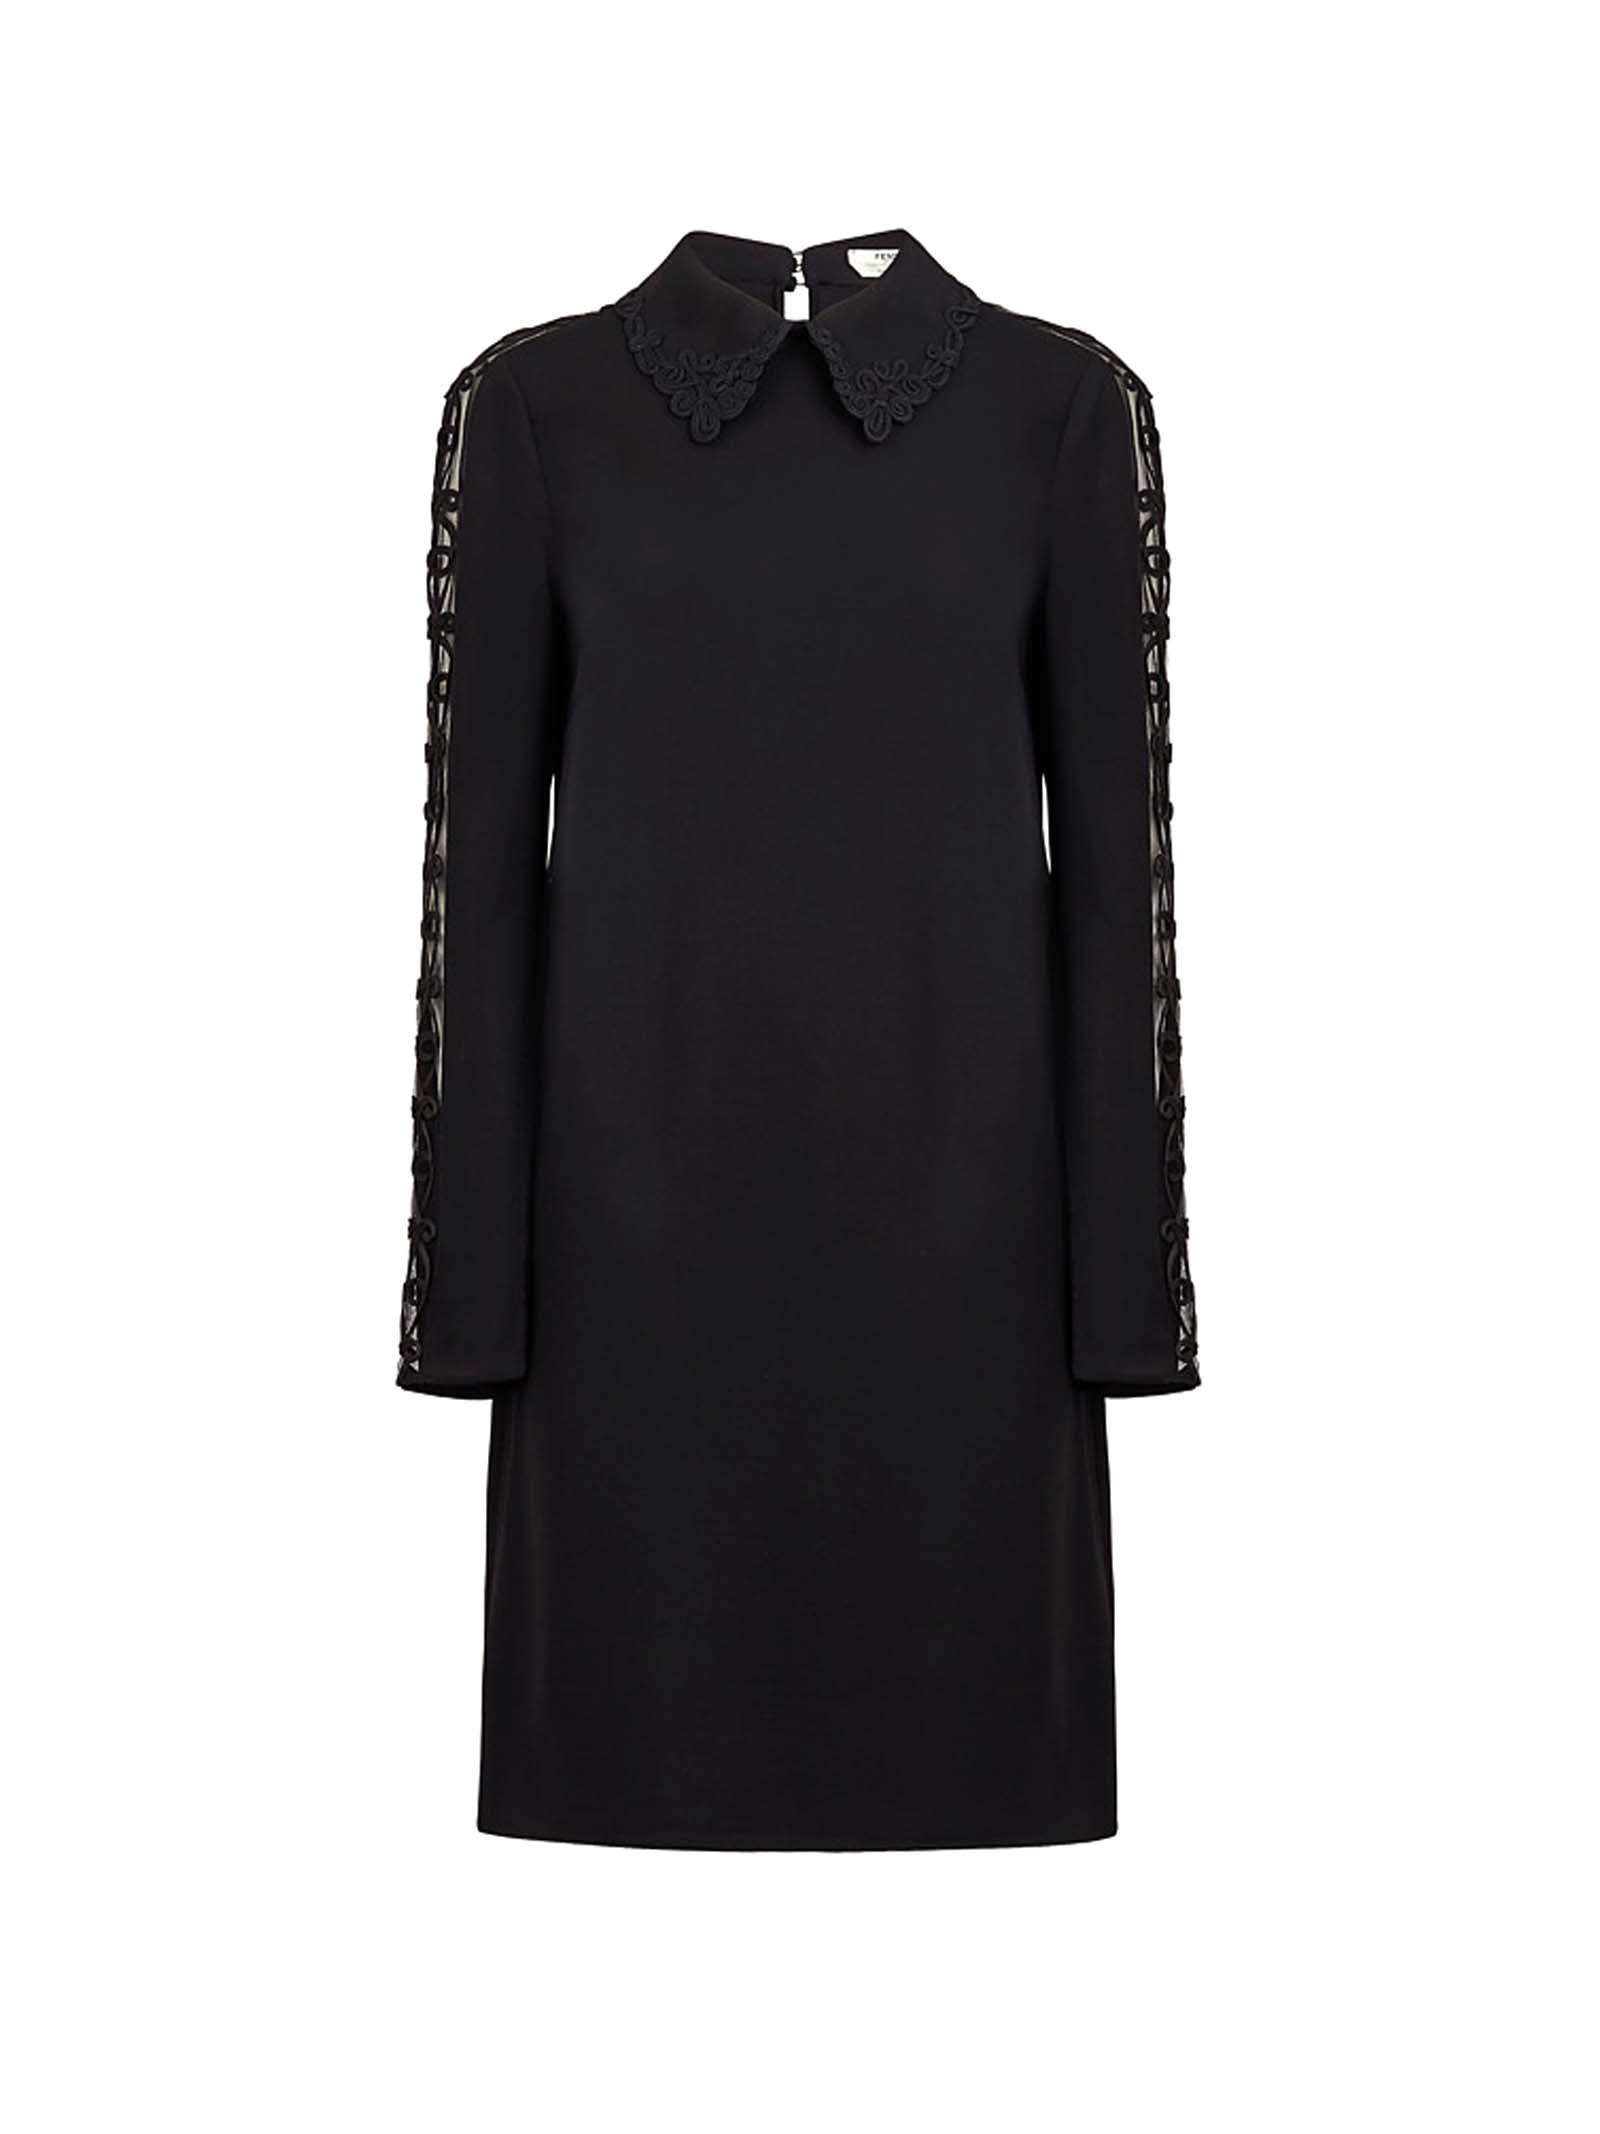 Fendi Fendi Lace Sleeve Shirt Dress